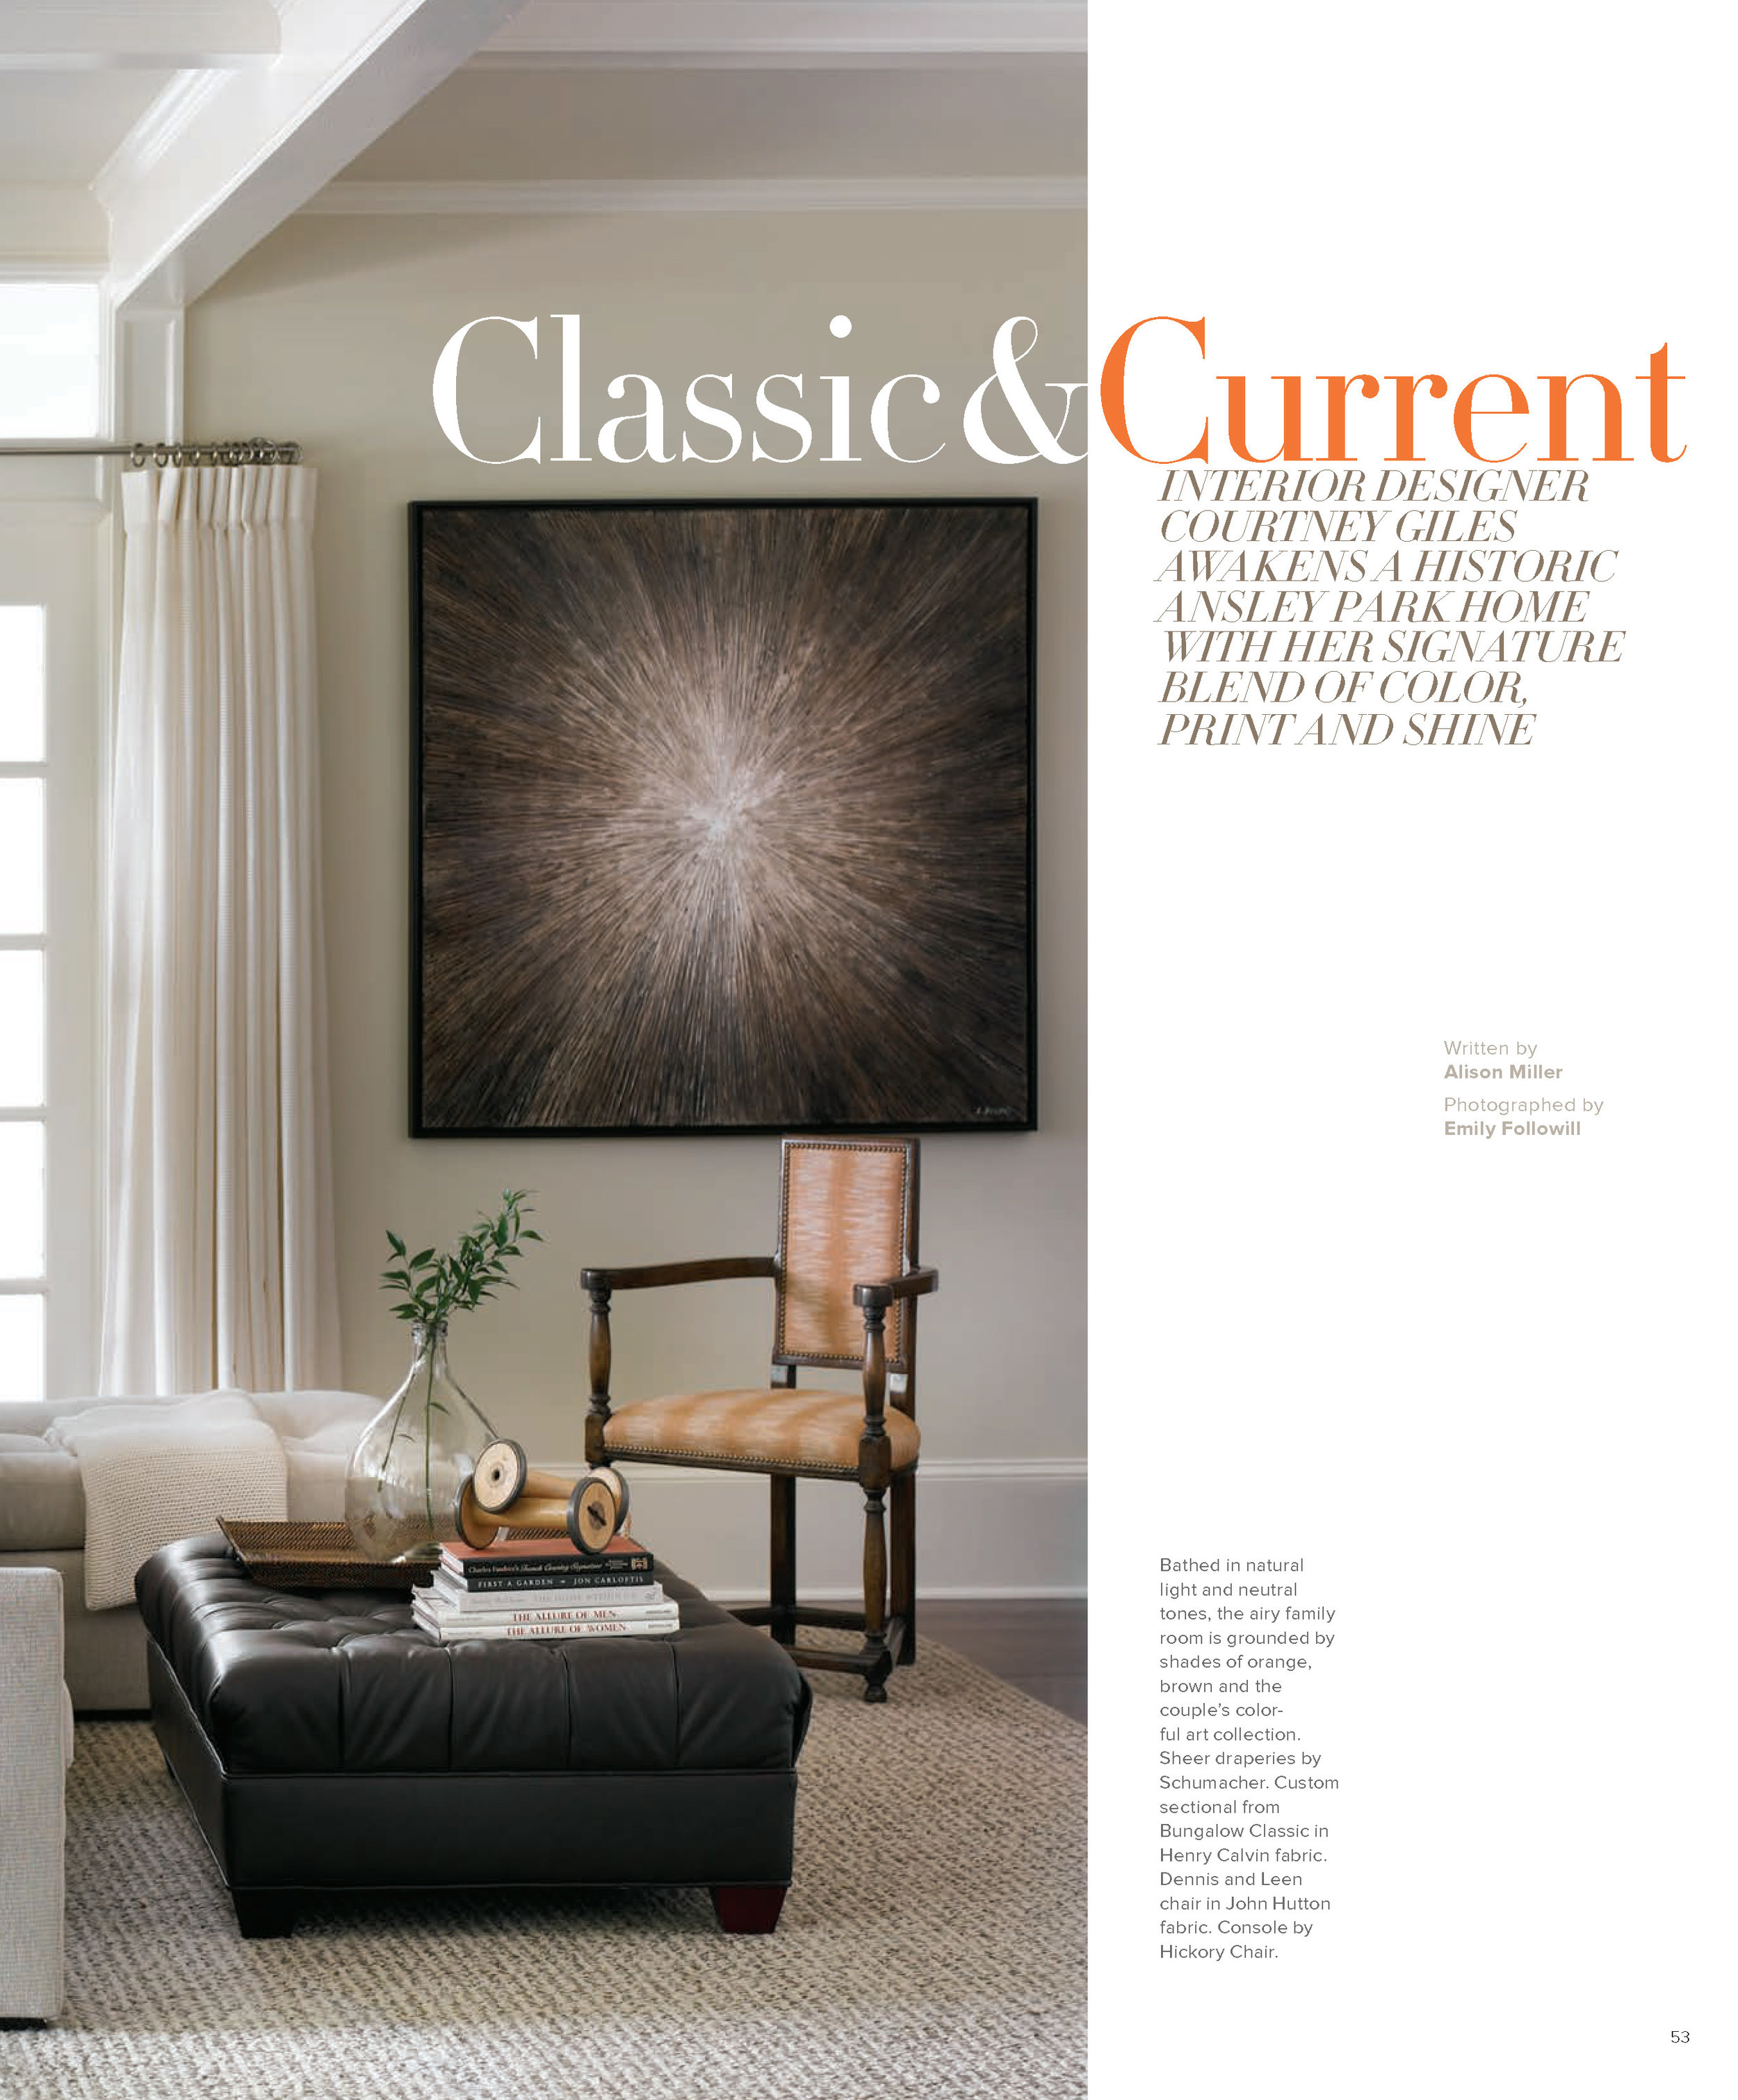 Special Leen Light Fixtures Leen Chateau Chandelier Dennis 2017 1 Ahl Jan14 Digitaledition Page 02 Dennis houzz-03 Dennis And Leen